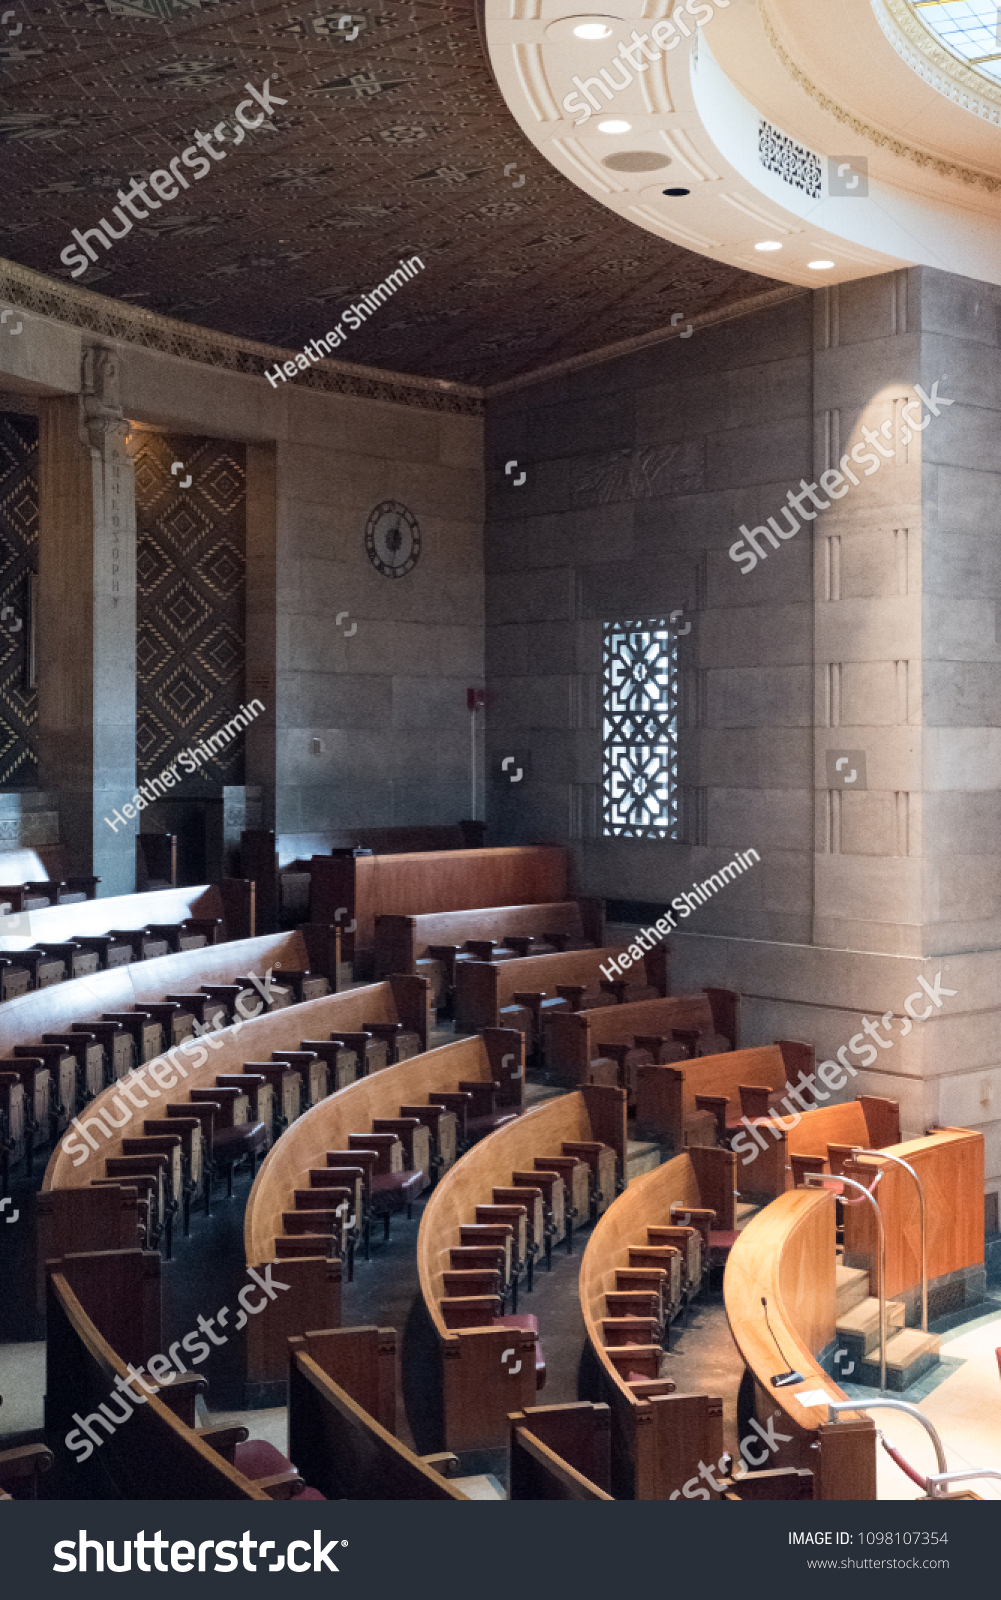 Buffalo NY USA - 6 November 2017 Interior of the Common Council Chamber on the 13th floor of City Hall in Buffalo New York. - Image & Buffalo NY USA 6 November 2017 Stock Photo (Edit Now) 1098107354 ...